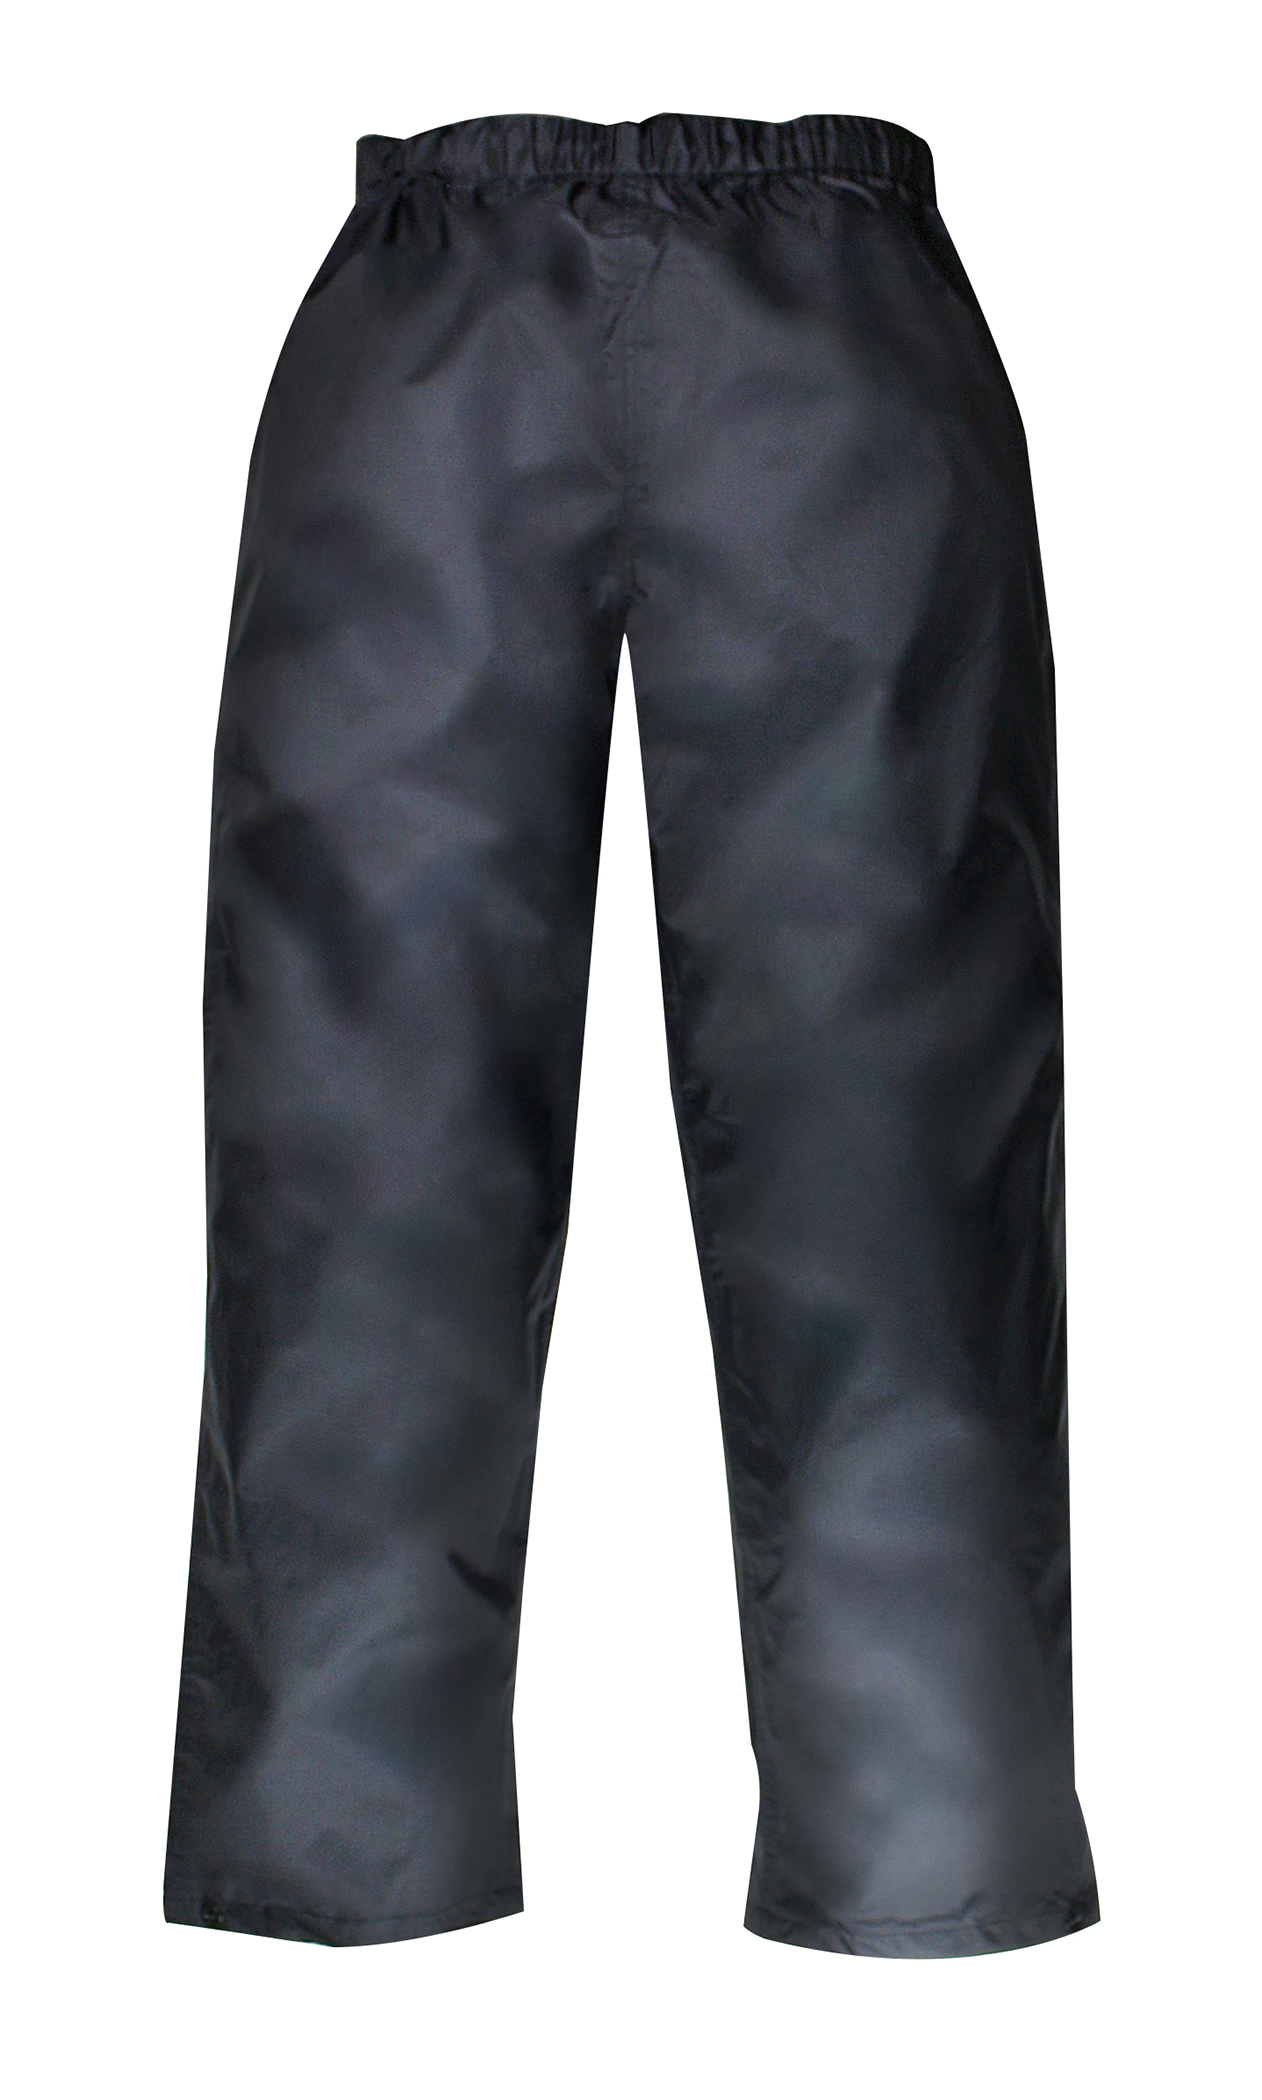 Red Ledge Youth Thunderlight Rain Pant by Tahsin Industrial Corp., USA